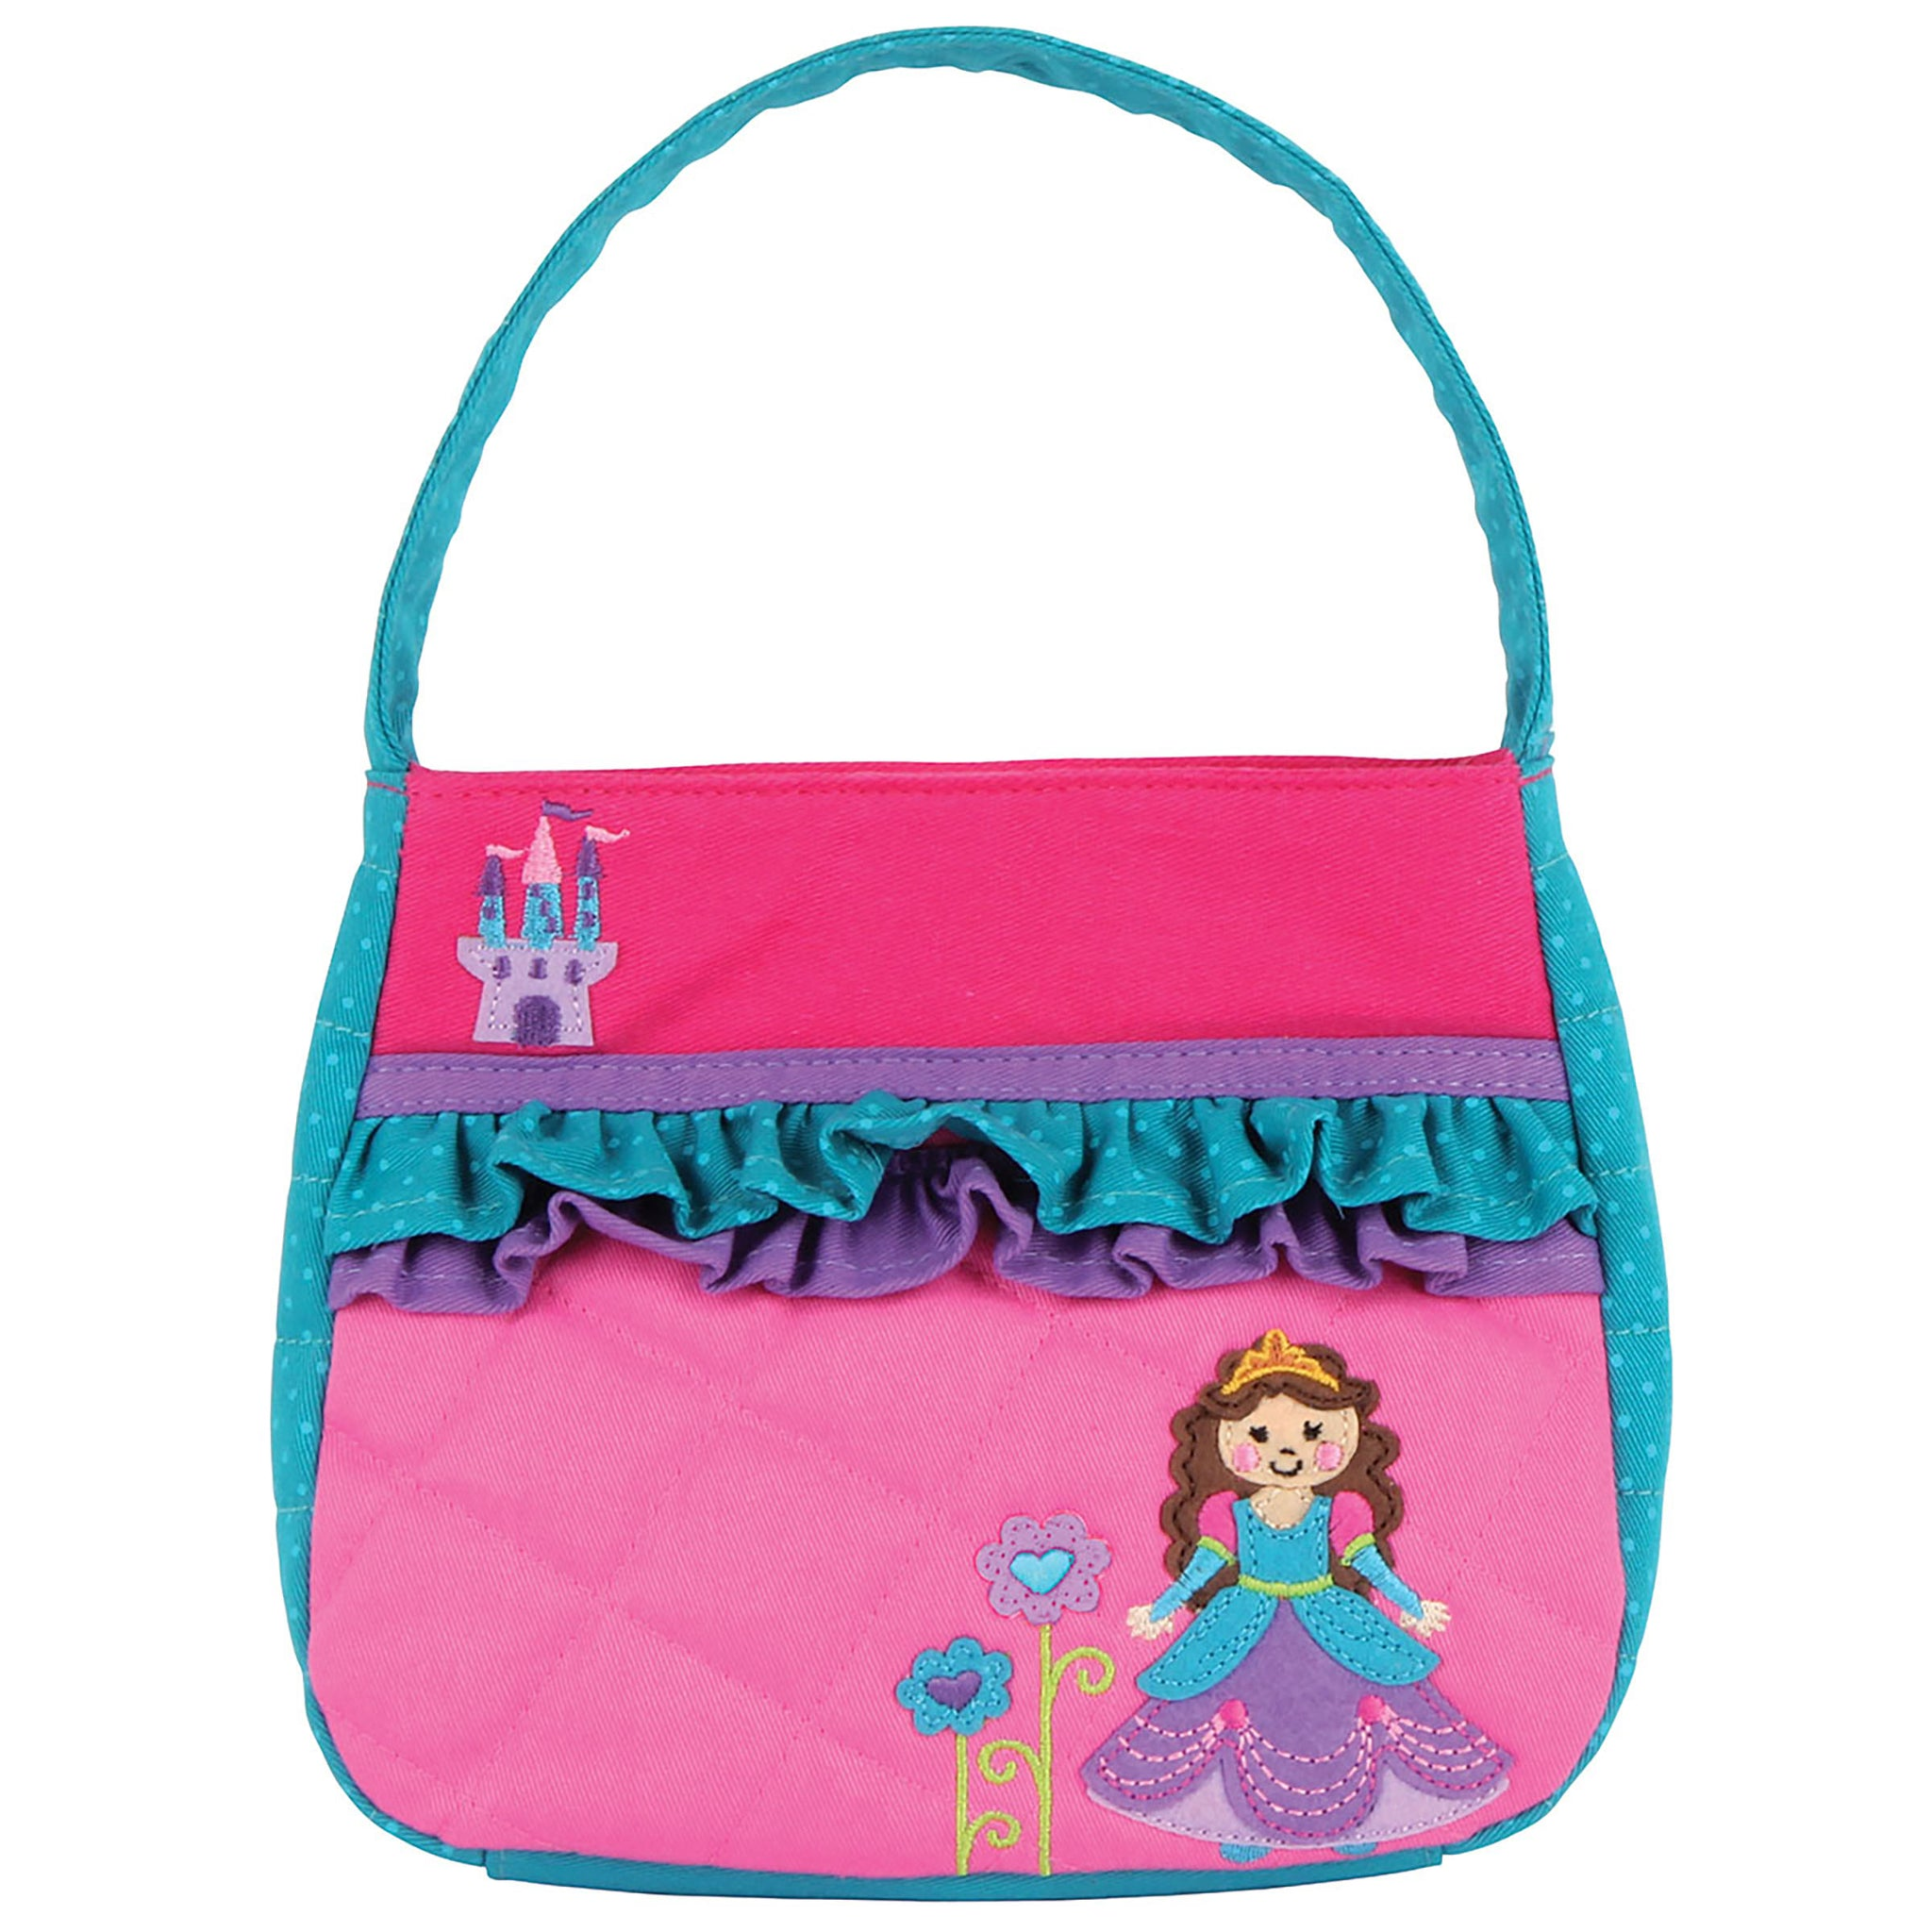 Quilted Purses - Princess/Castle